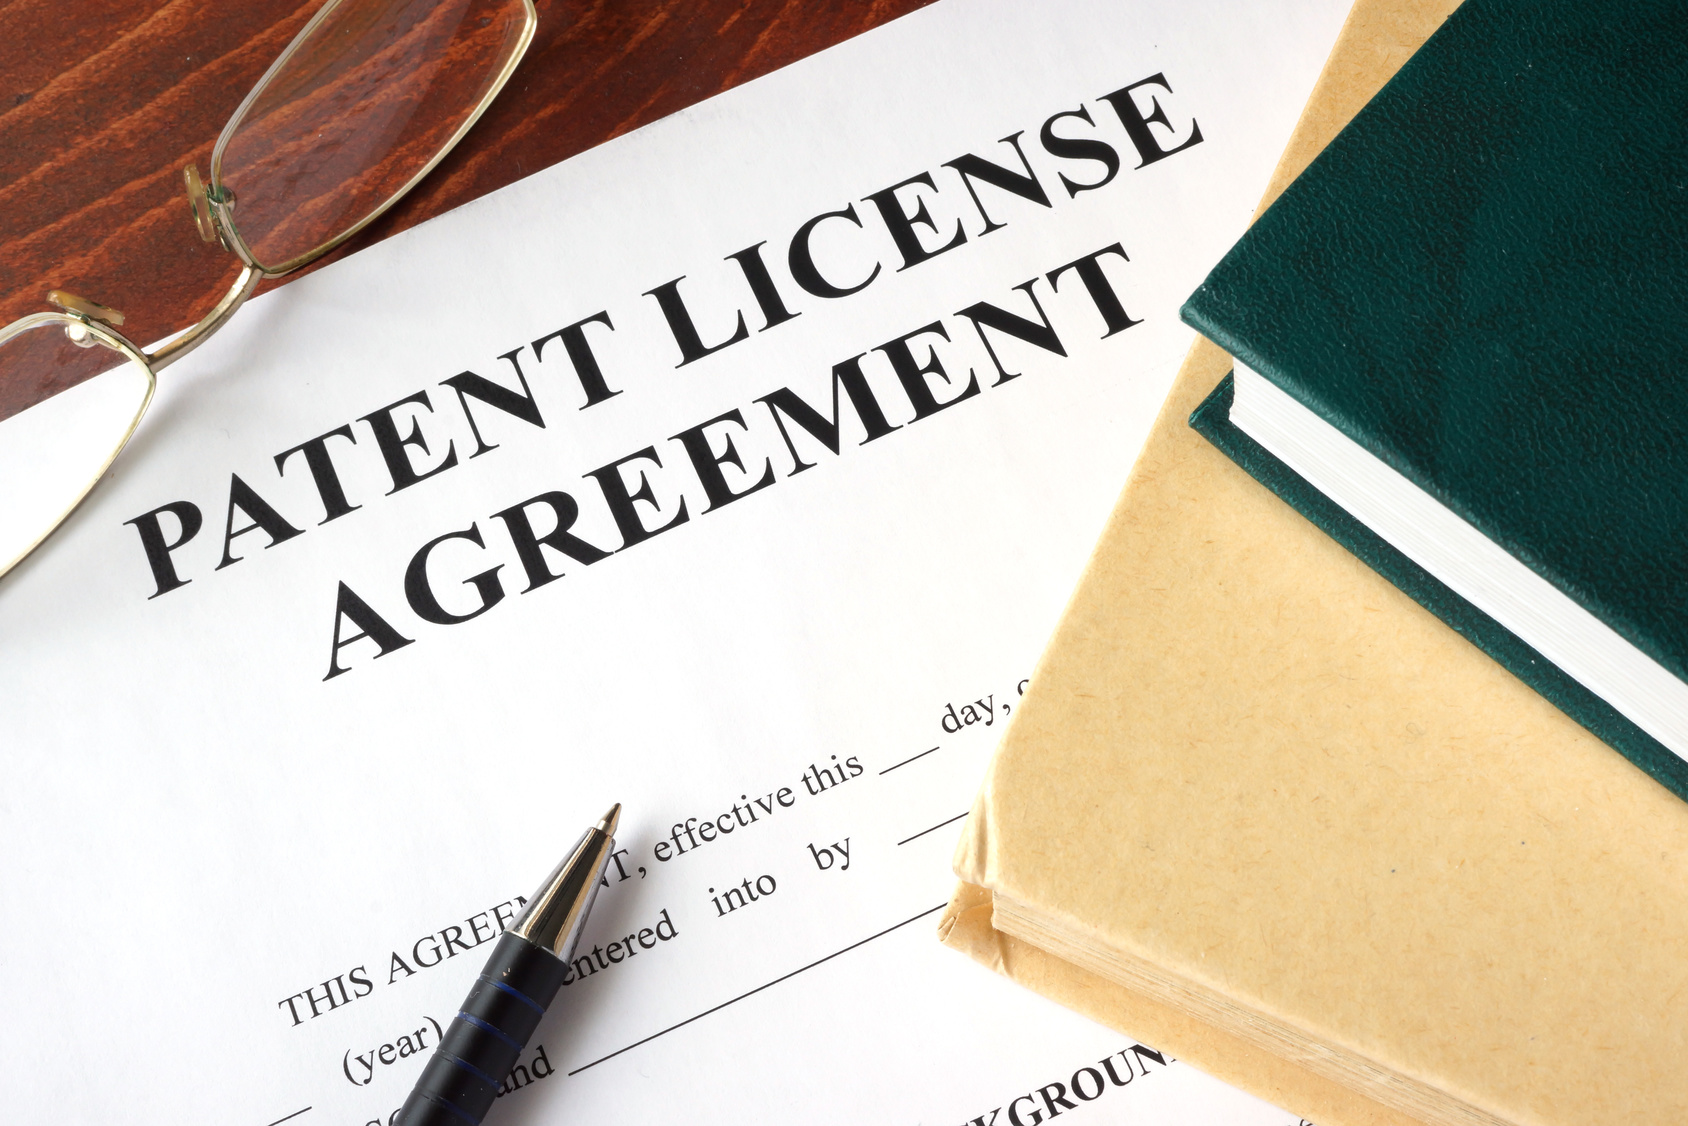 Understanding the use of licensing and agreement with respect to trademark, patent, design and copyright.